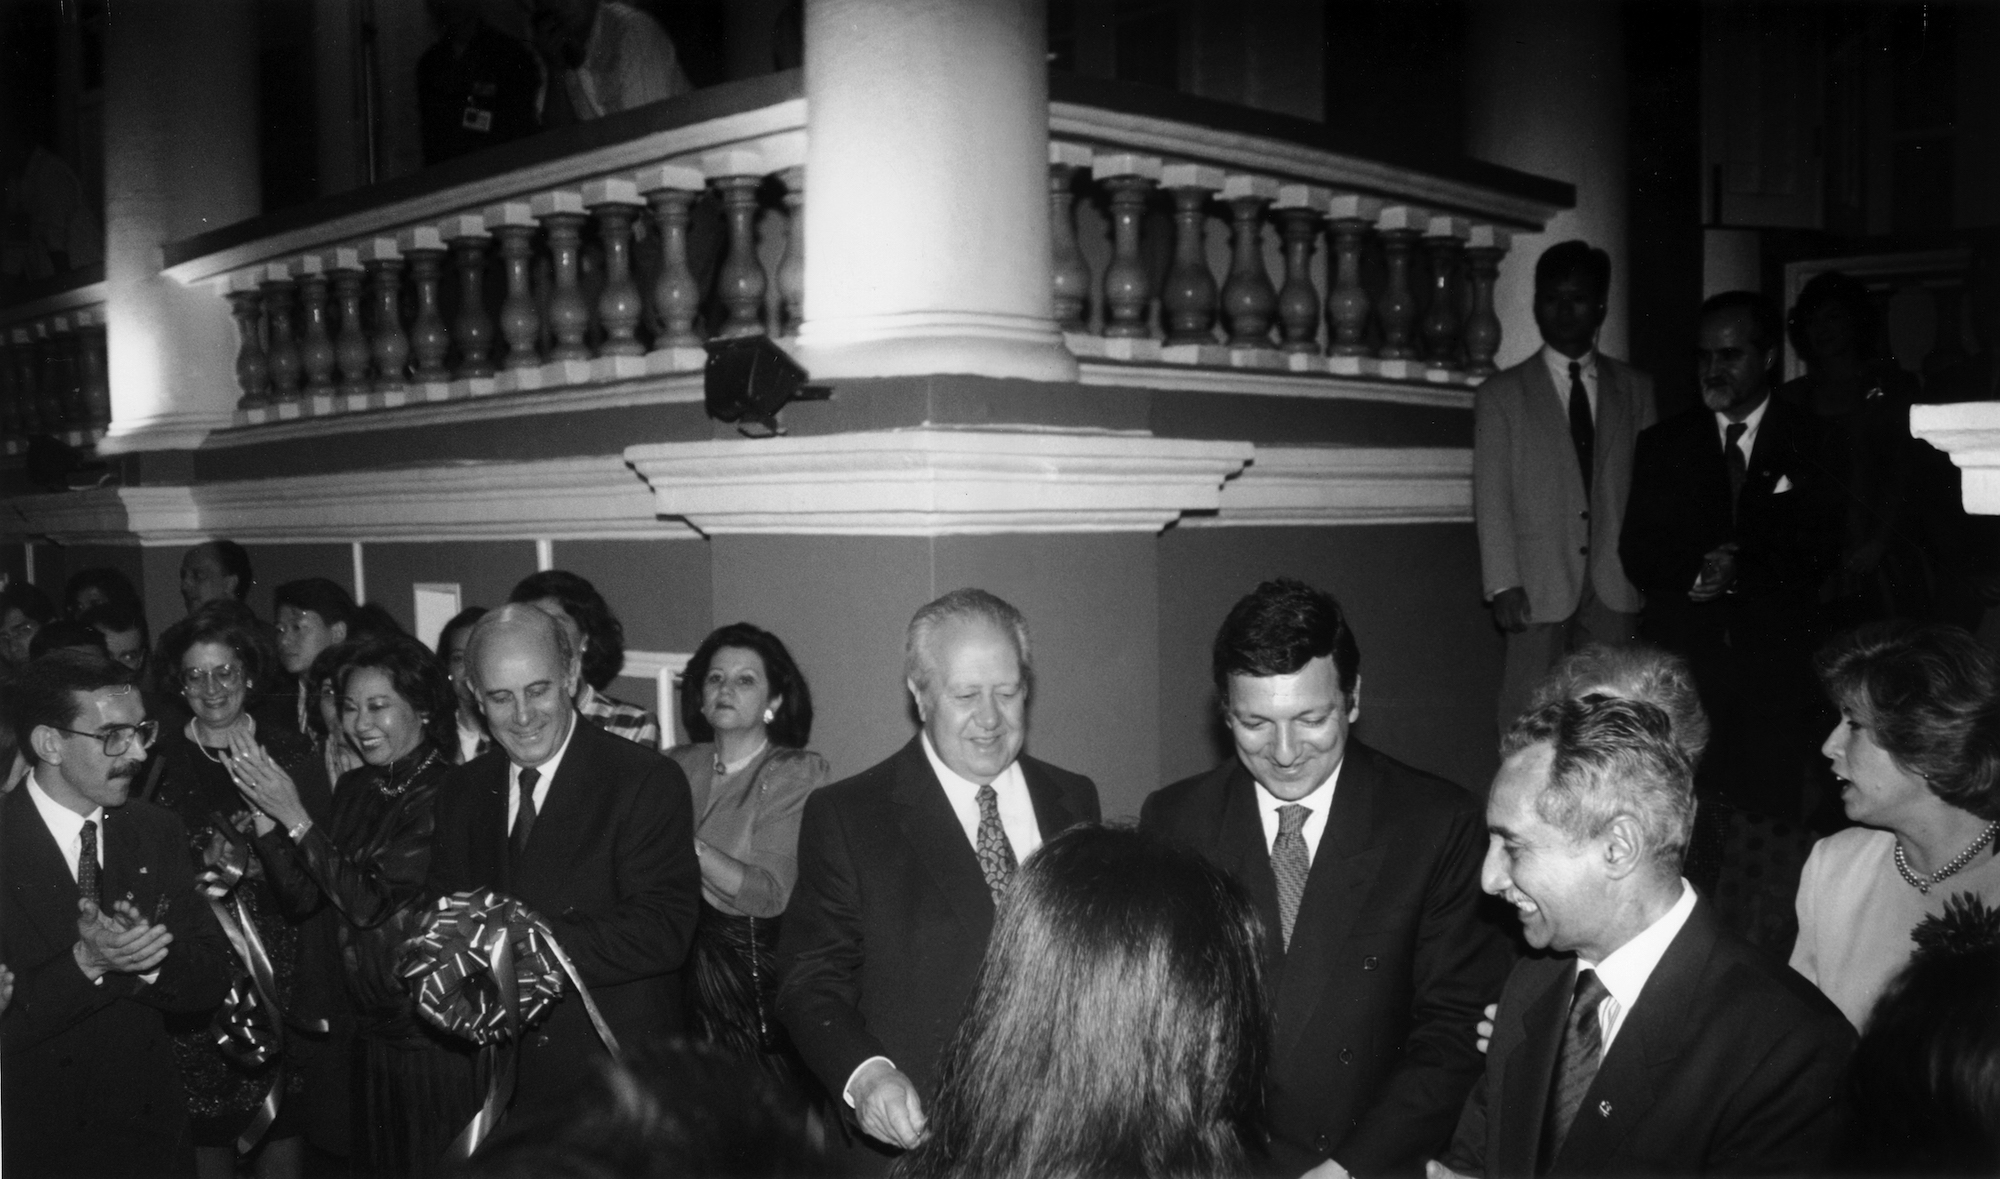 General Vasco Rocha Vieira, Dr Mário Soares and Dr Durão Barroso at the club's inauguration in 1995 - Photo Courtesy of the Military Club